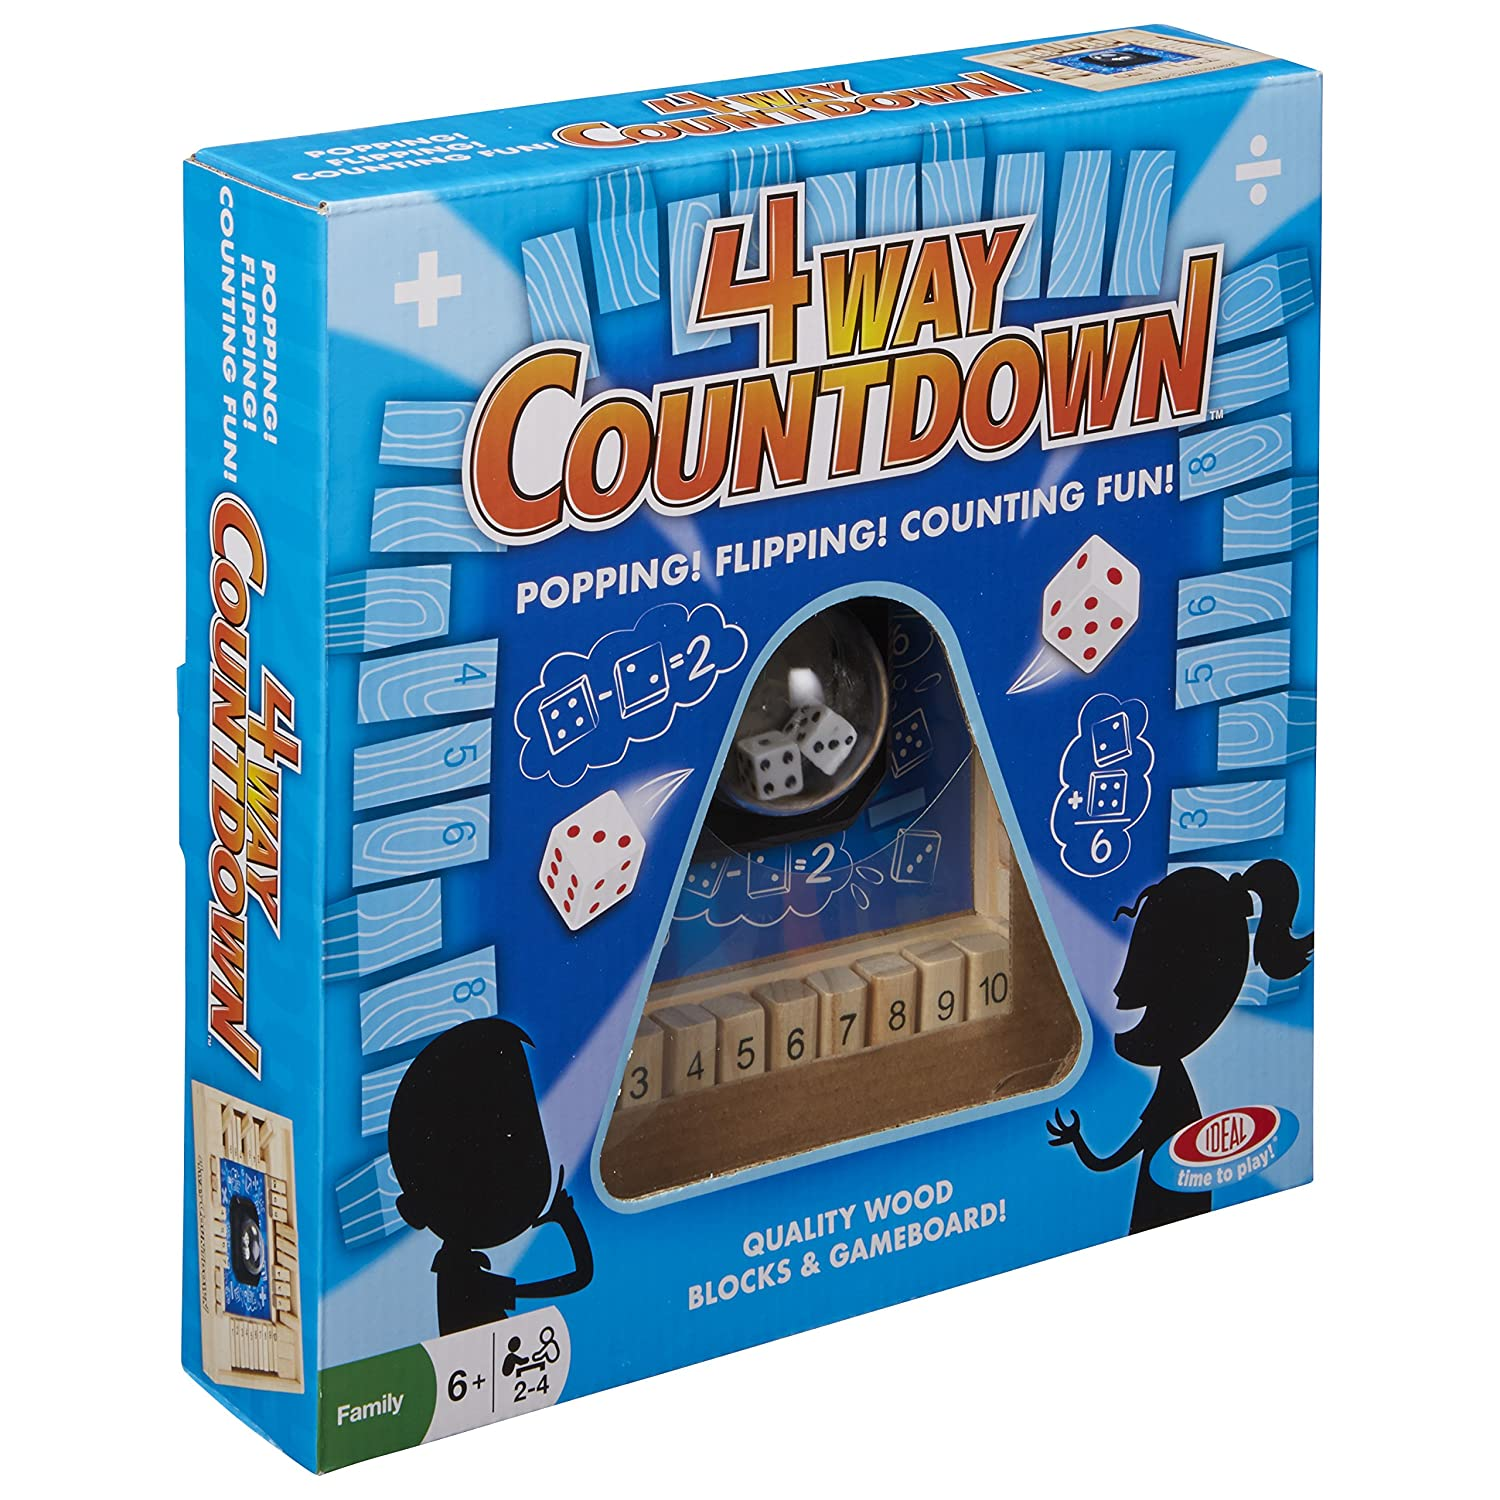 Amazon.com: Ideal 4-Way CountDown Game: Toys & Games